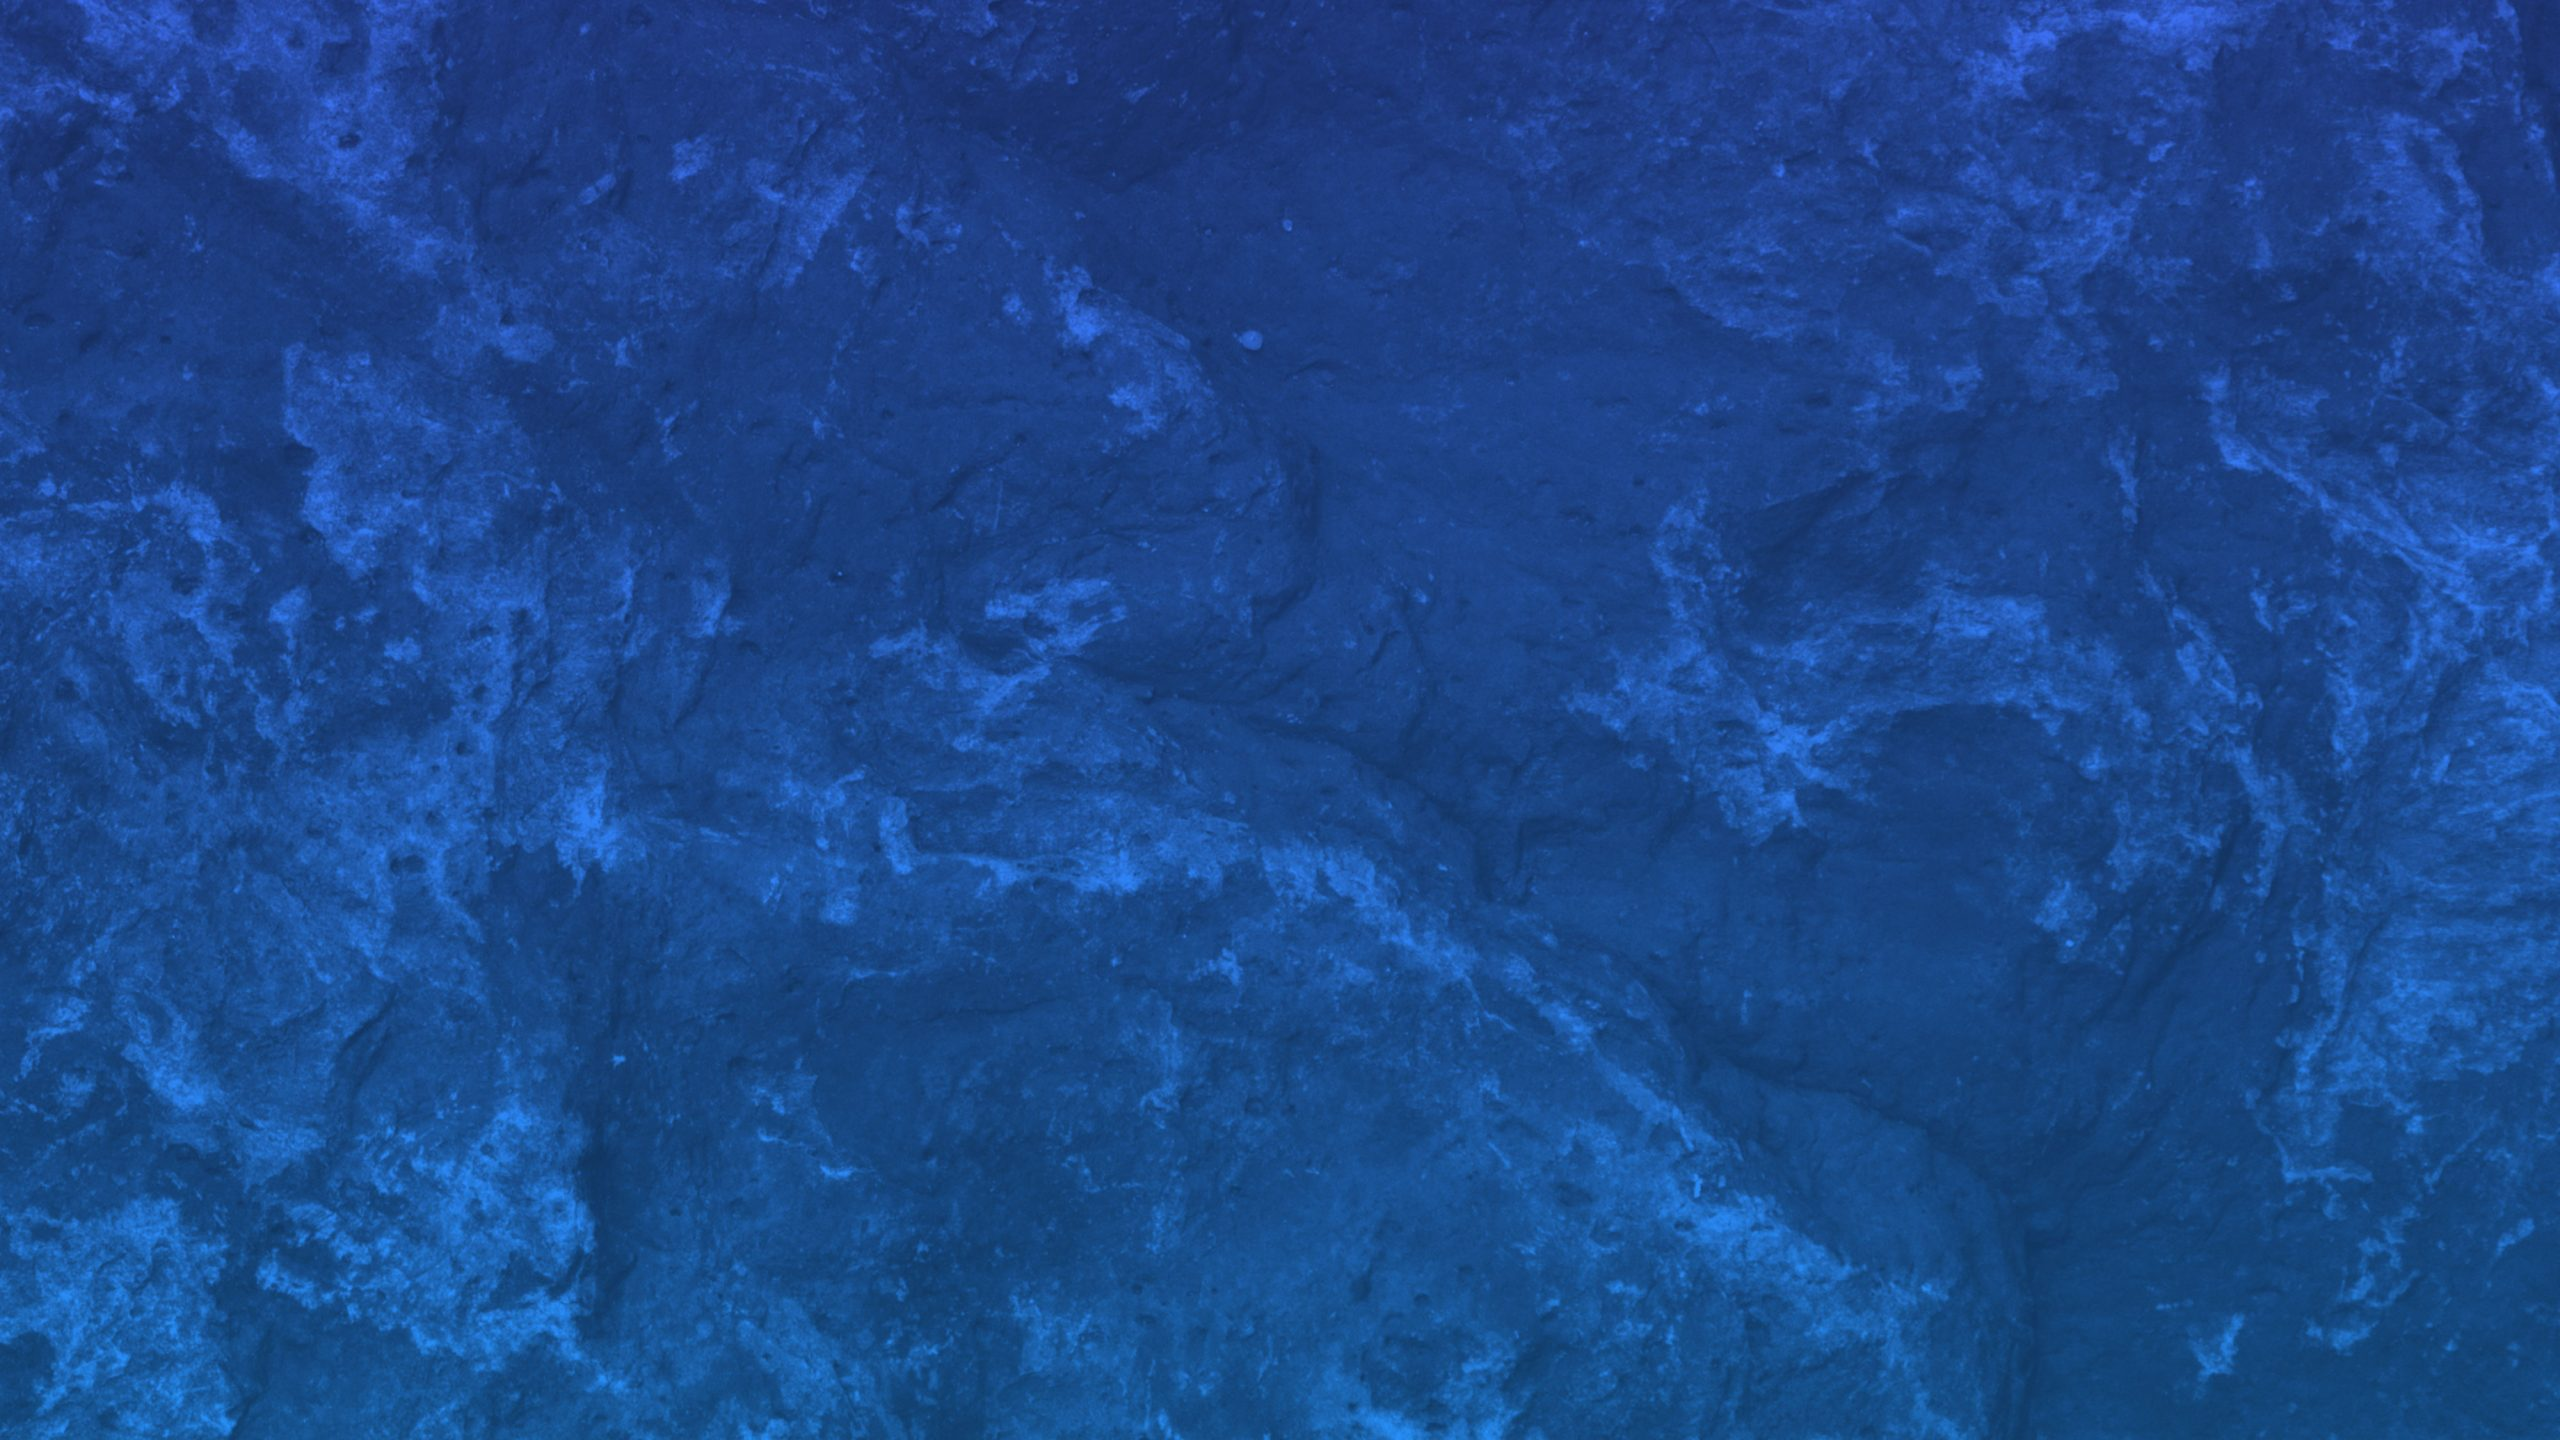 Blue textured wallpaper